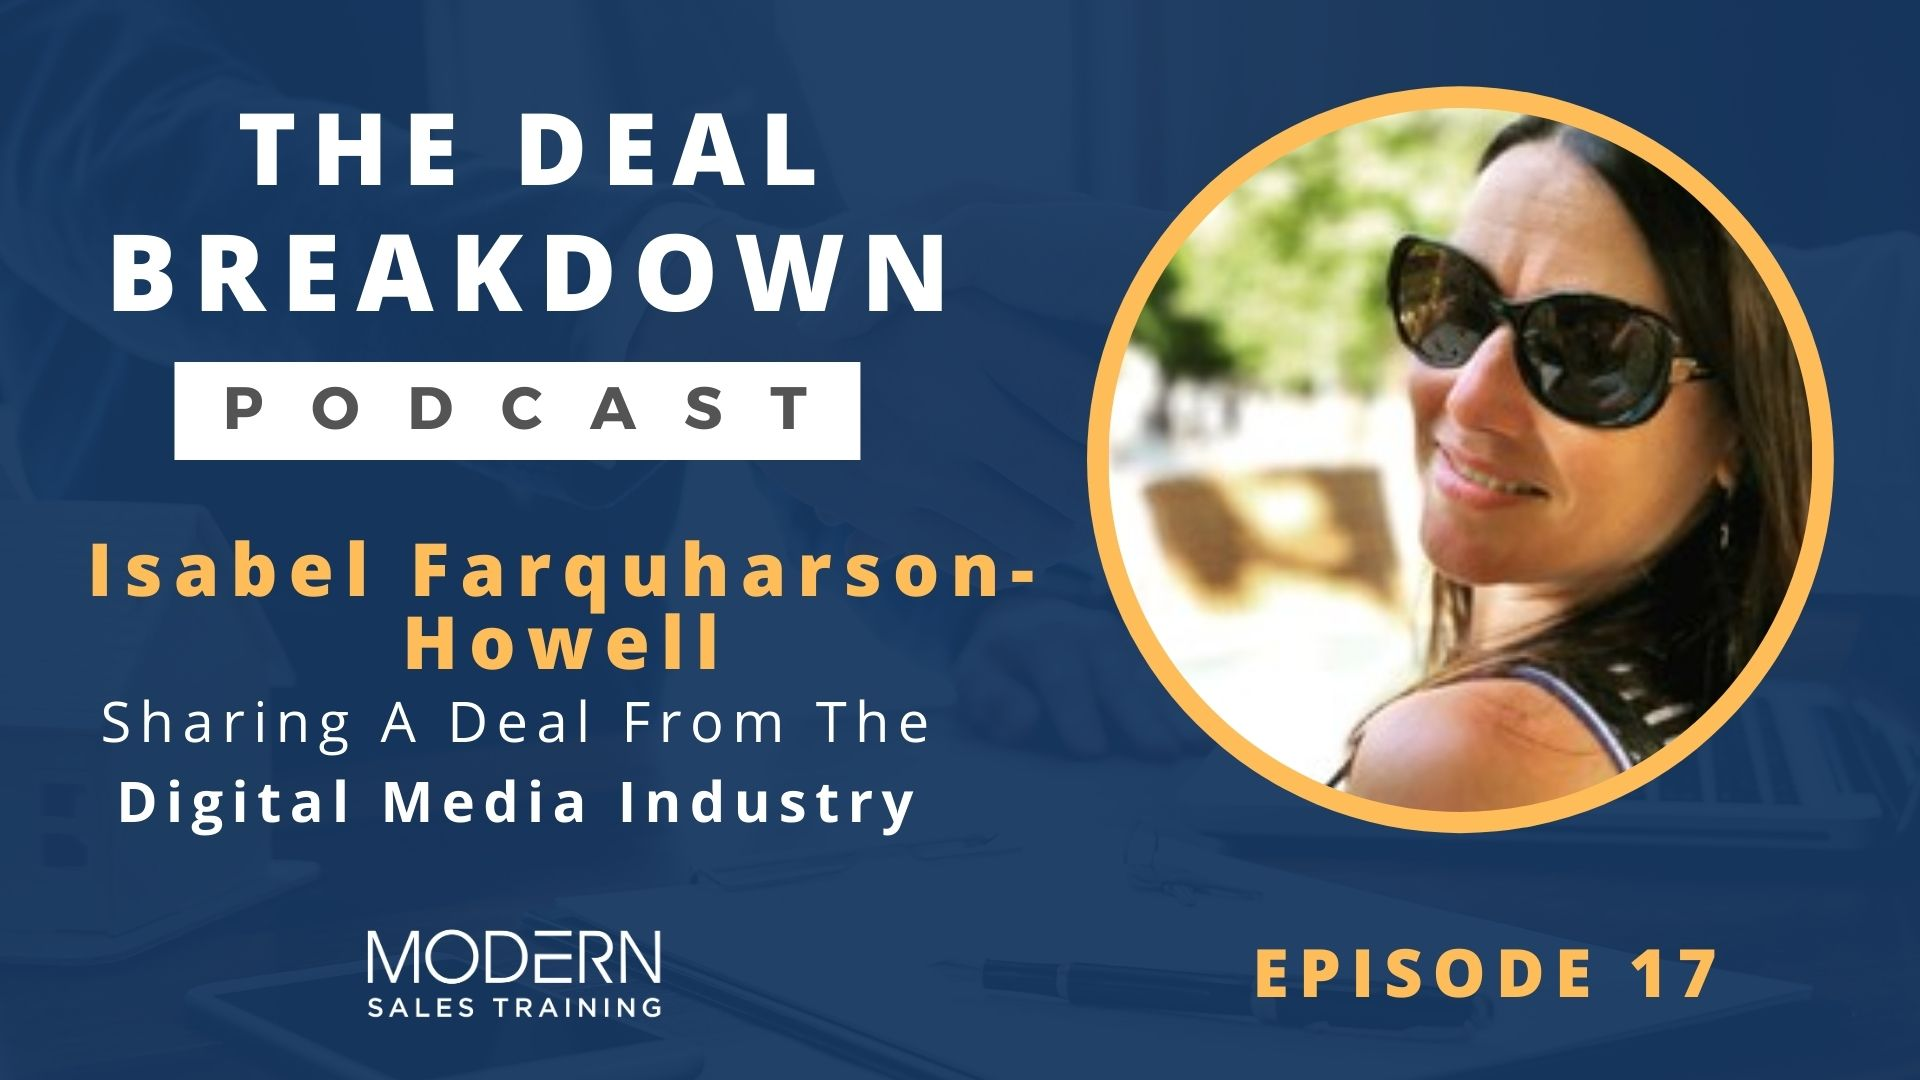 The-Deal-Breakdown-Podcast-Modern-Sales-Training-Isabel-Farquharson-Howell